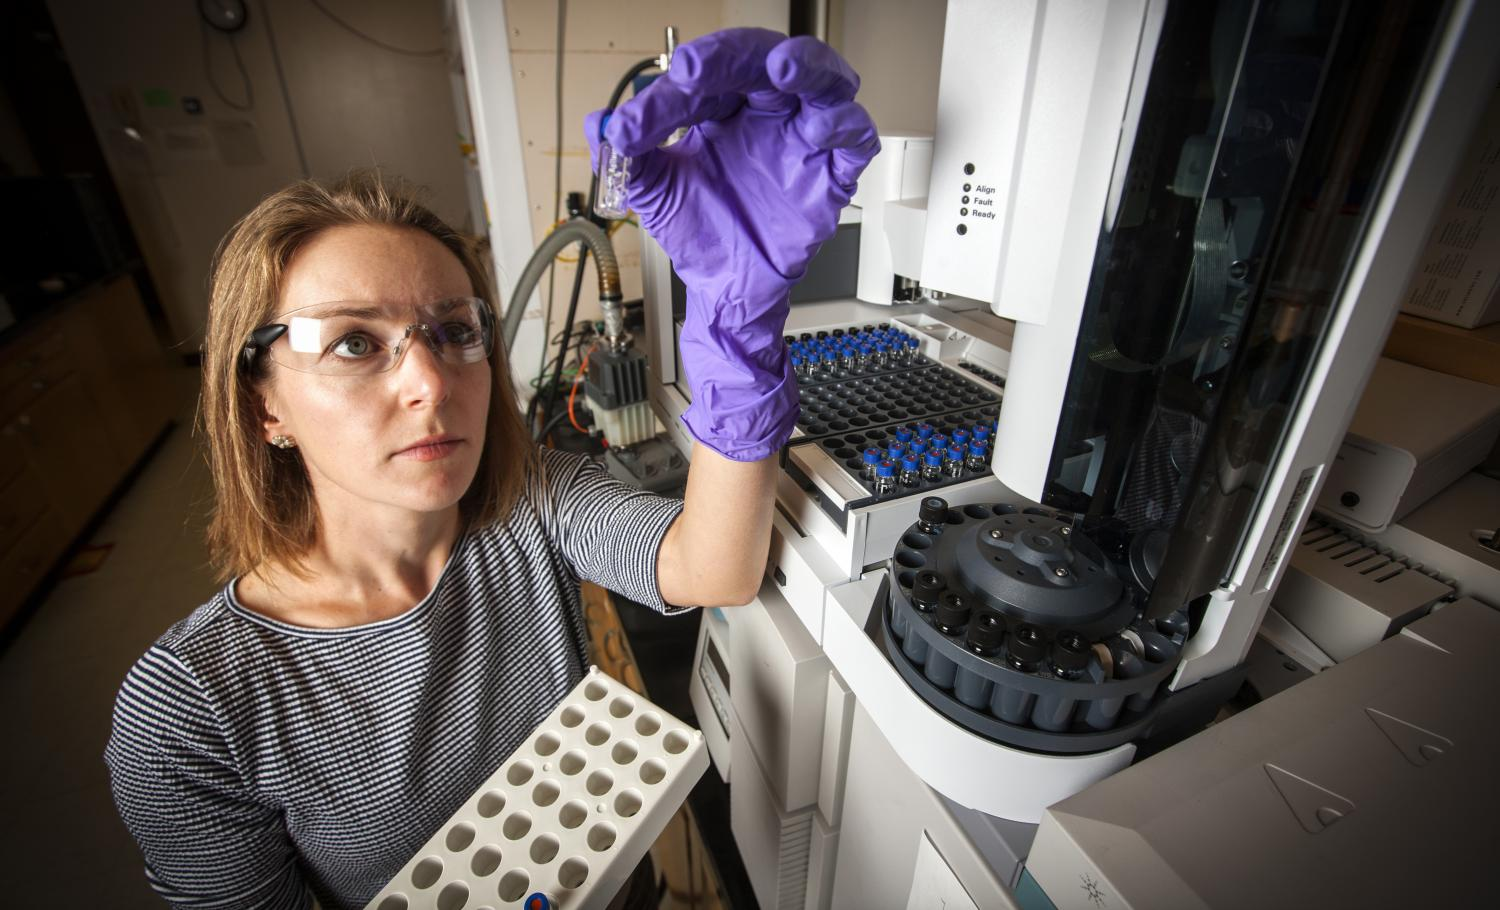 A New Bio-Active 3D Printing Polymer Suggests Many New Applications